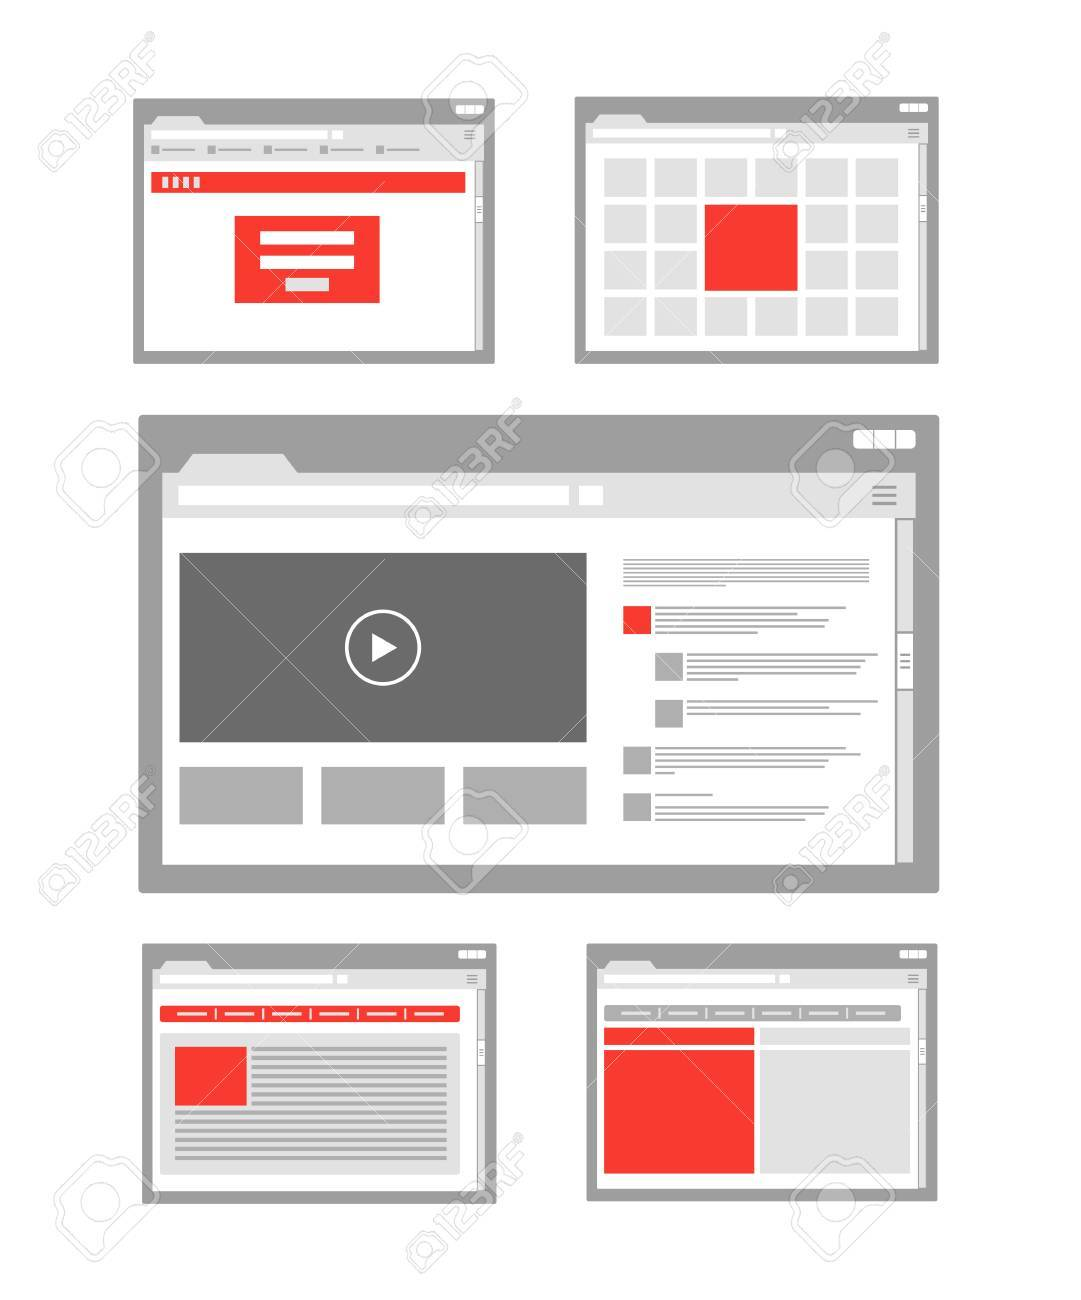 web site page templates collection - 24508463